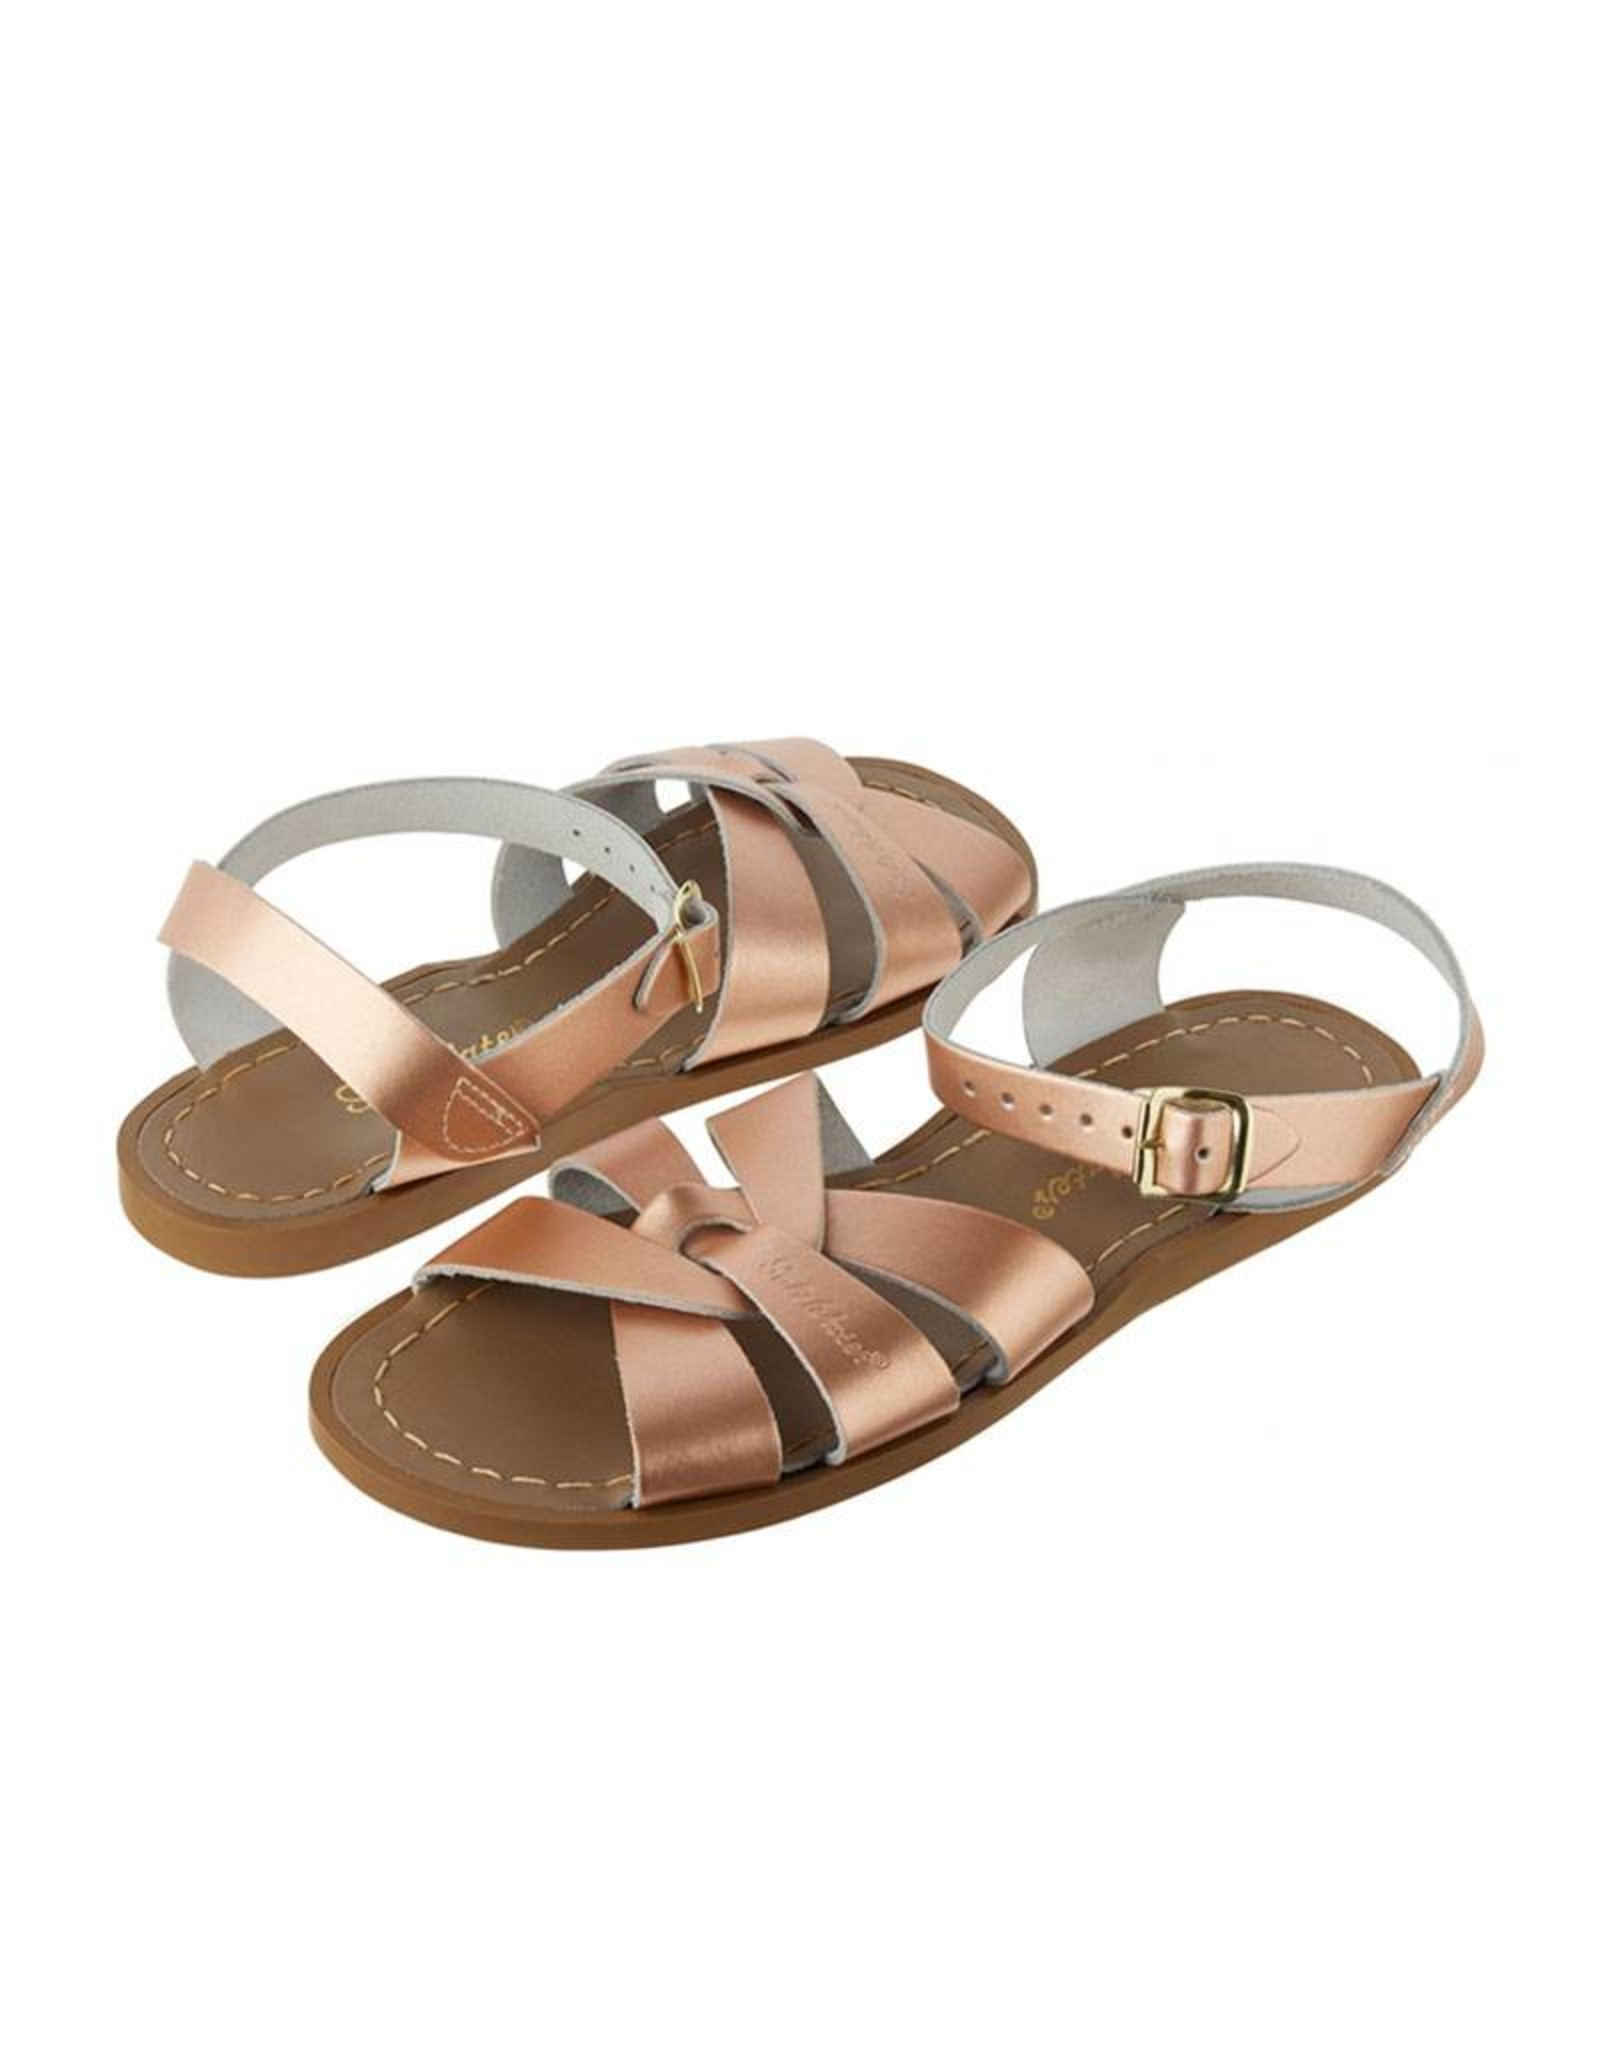 SALT WATER SANDALS SALT WATER SANDAL original rose gold